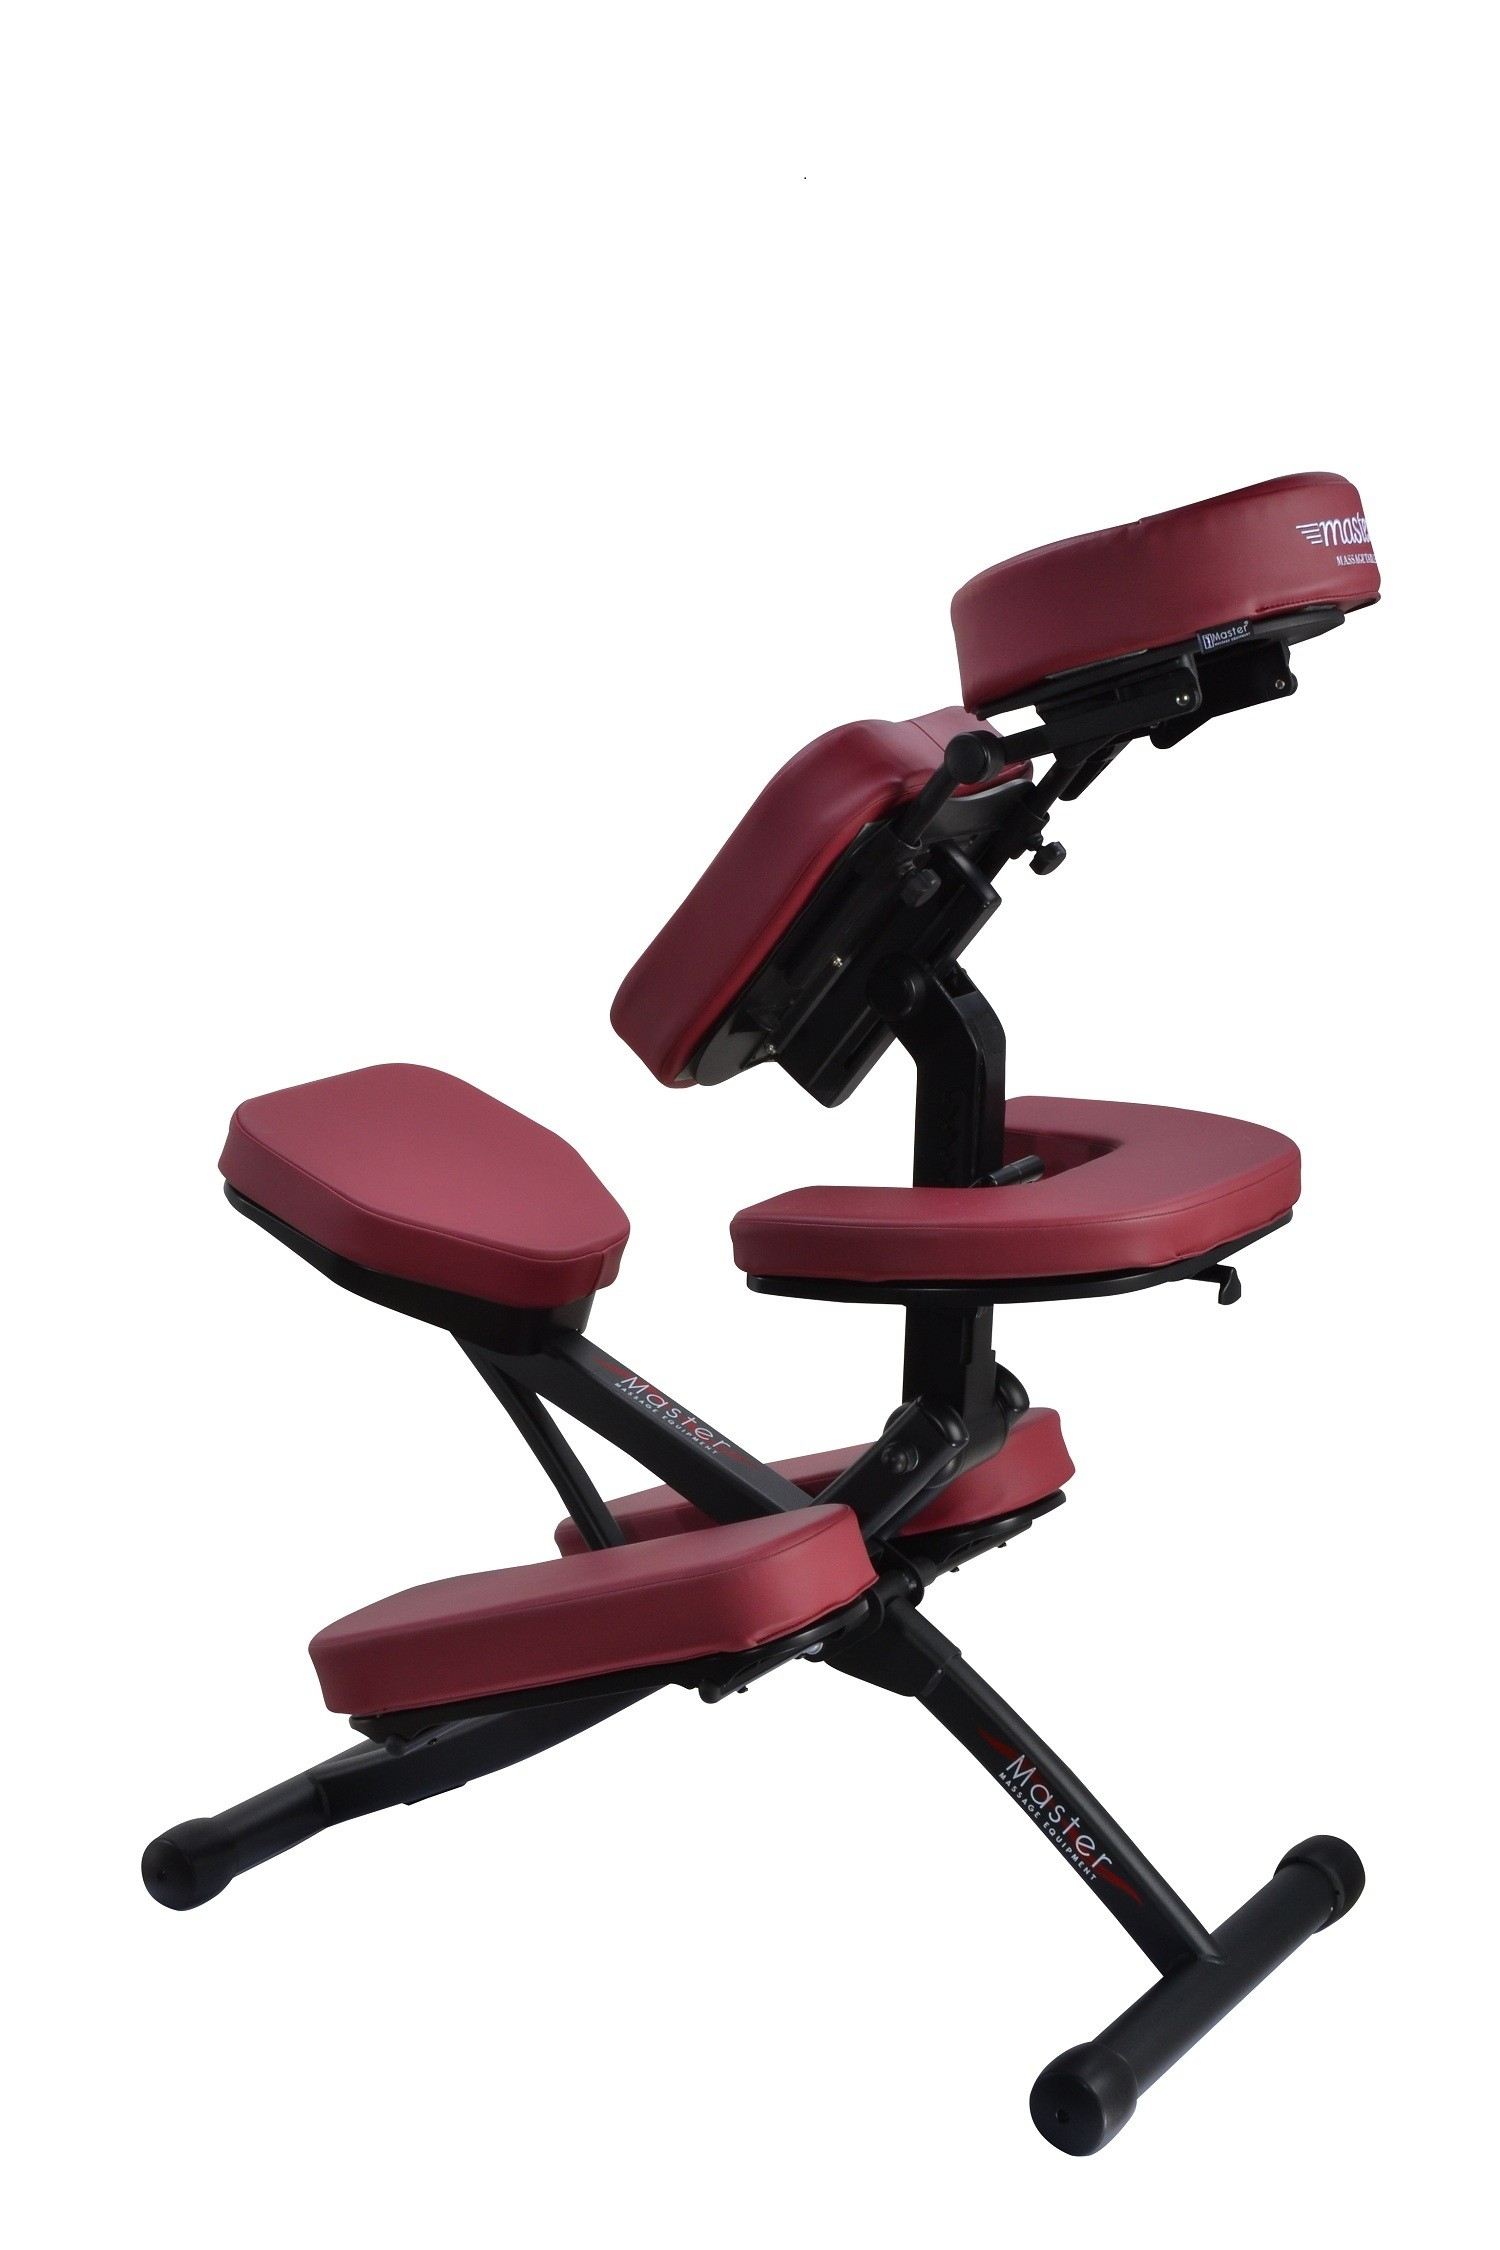 Portable Tattoo Chair Rio Portable Folding Massage Chair For Spa Tattoo W